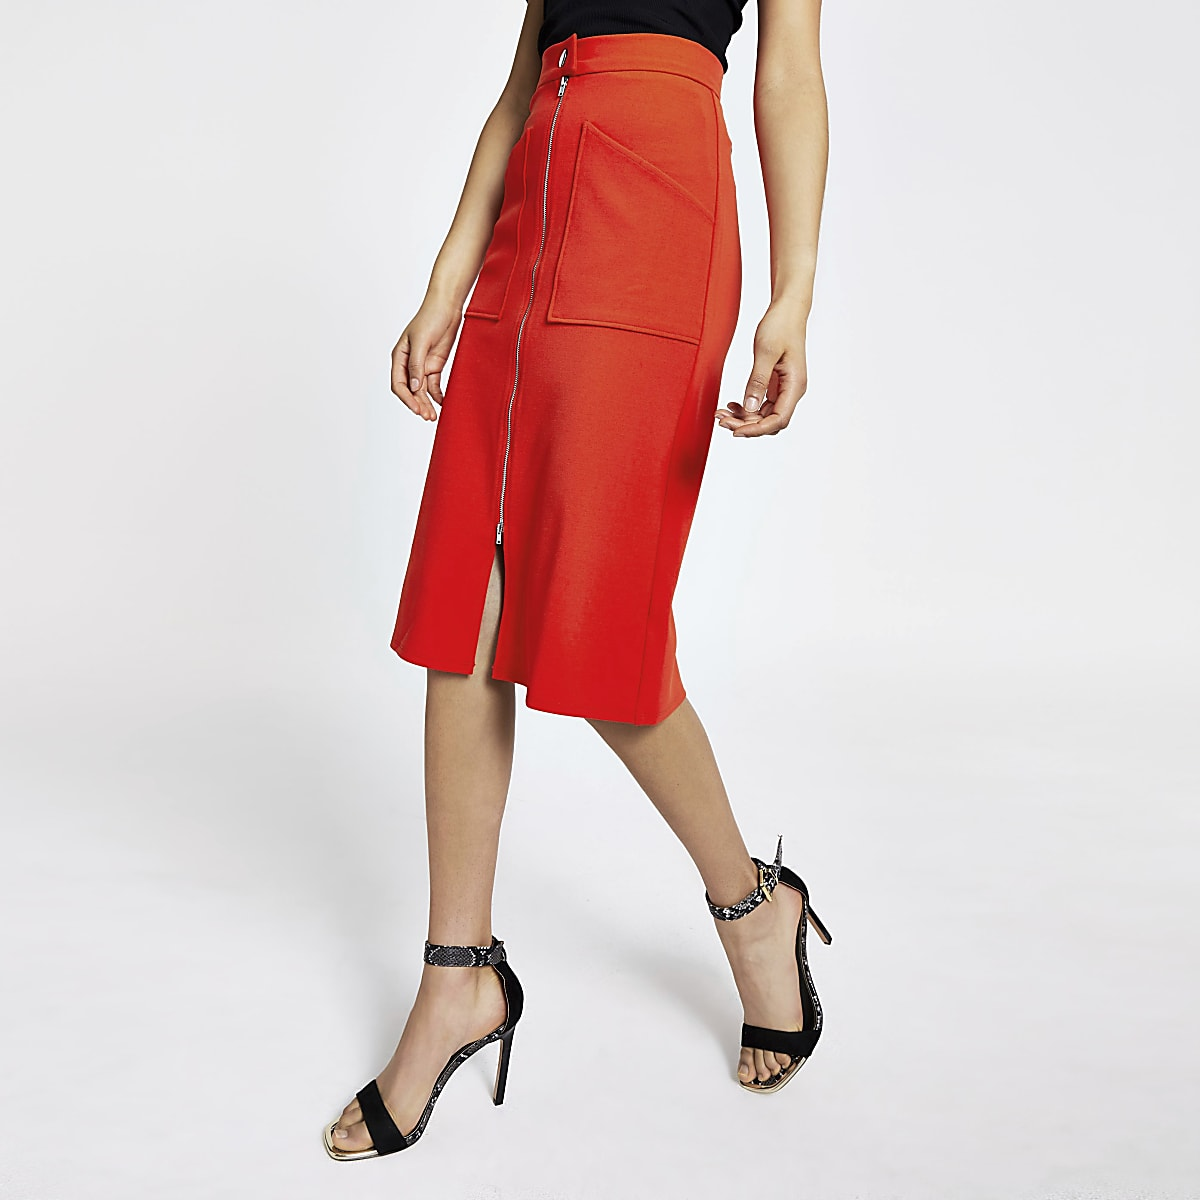 53eed0649 Red zip front pencil skirt - Midi Skirts - Skirts - women